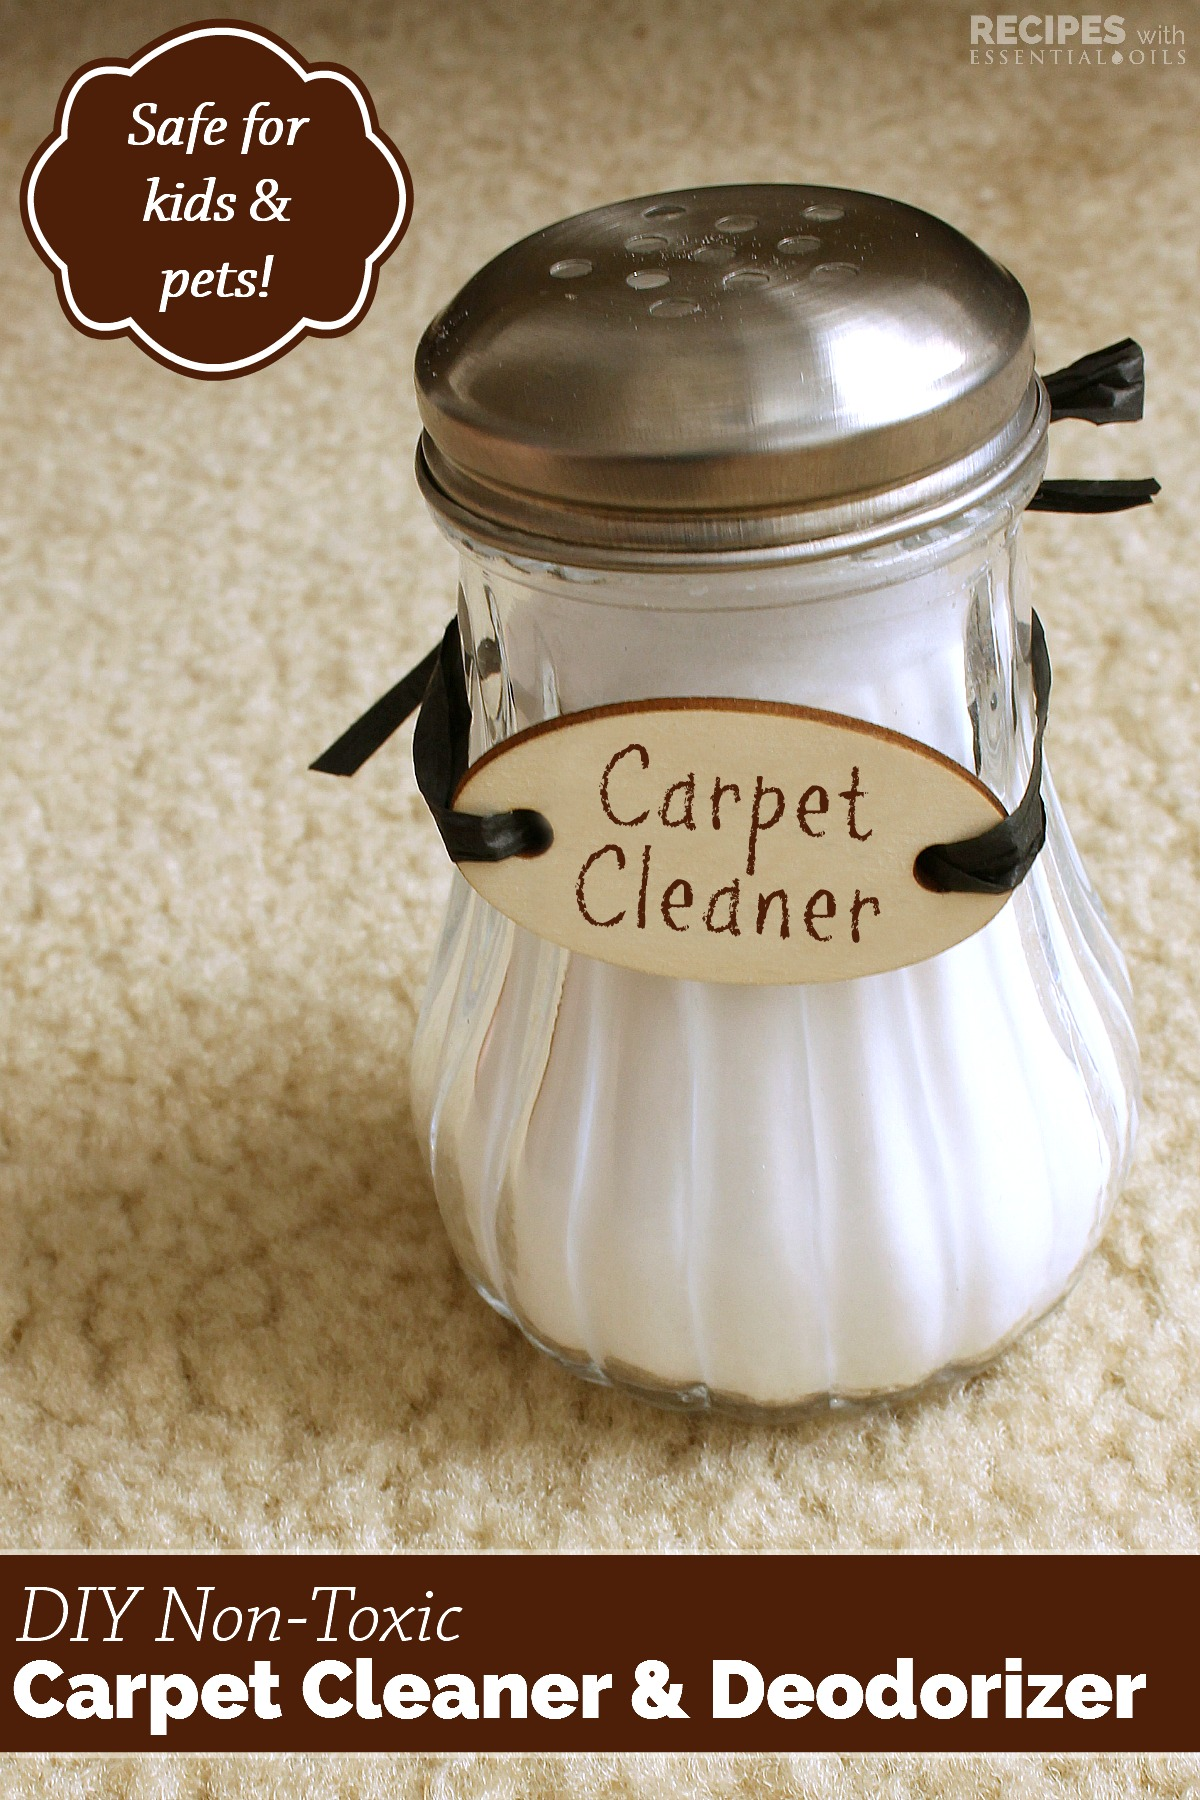 DIY NonToxic Carpet Cleaner and Deodorizer from RecipesWithEssentialOils.com